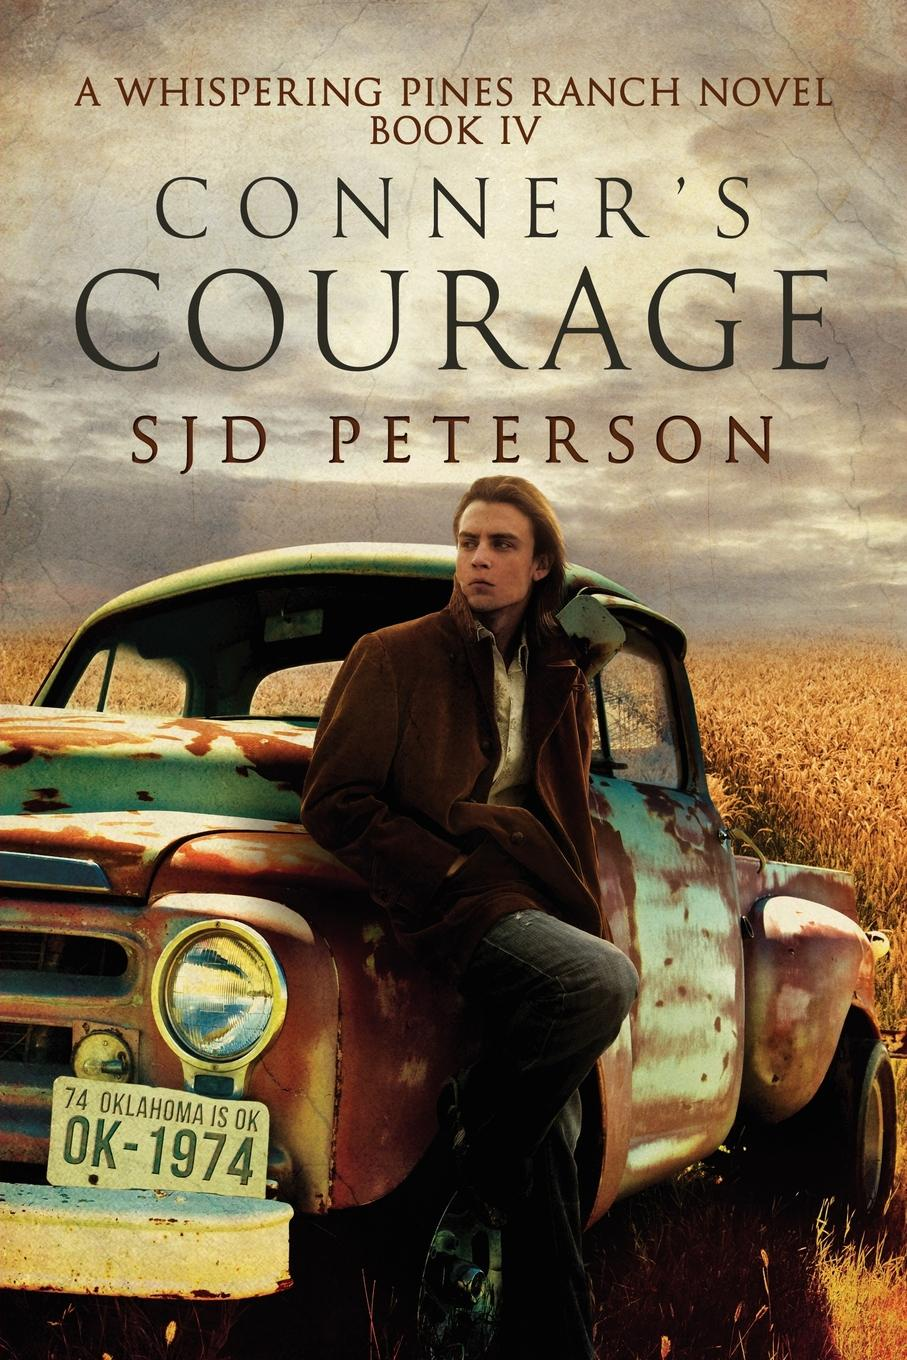 Sjd Peterson Conner.s Courage sjd peterson conner s courage